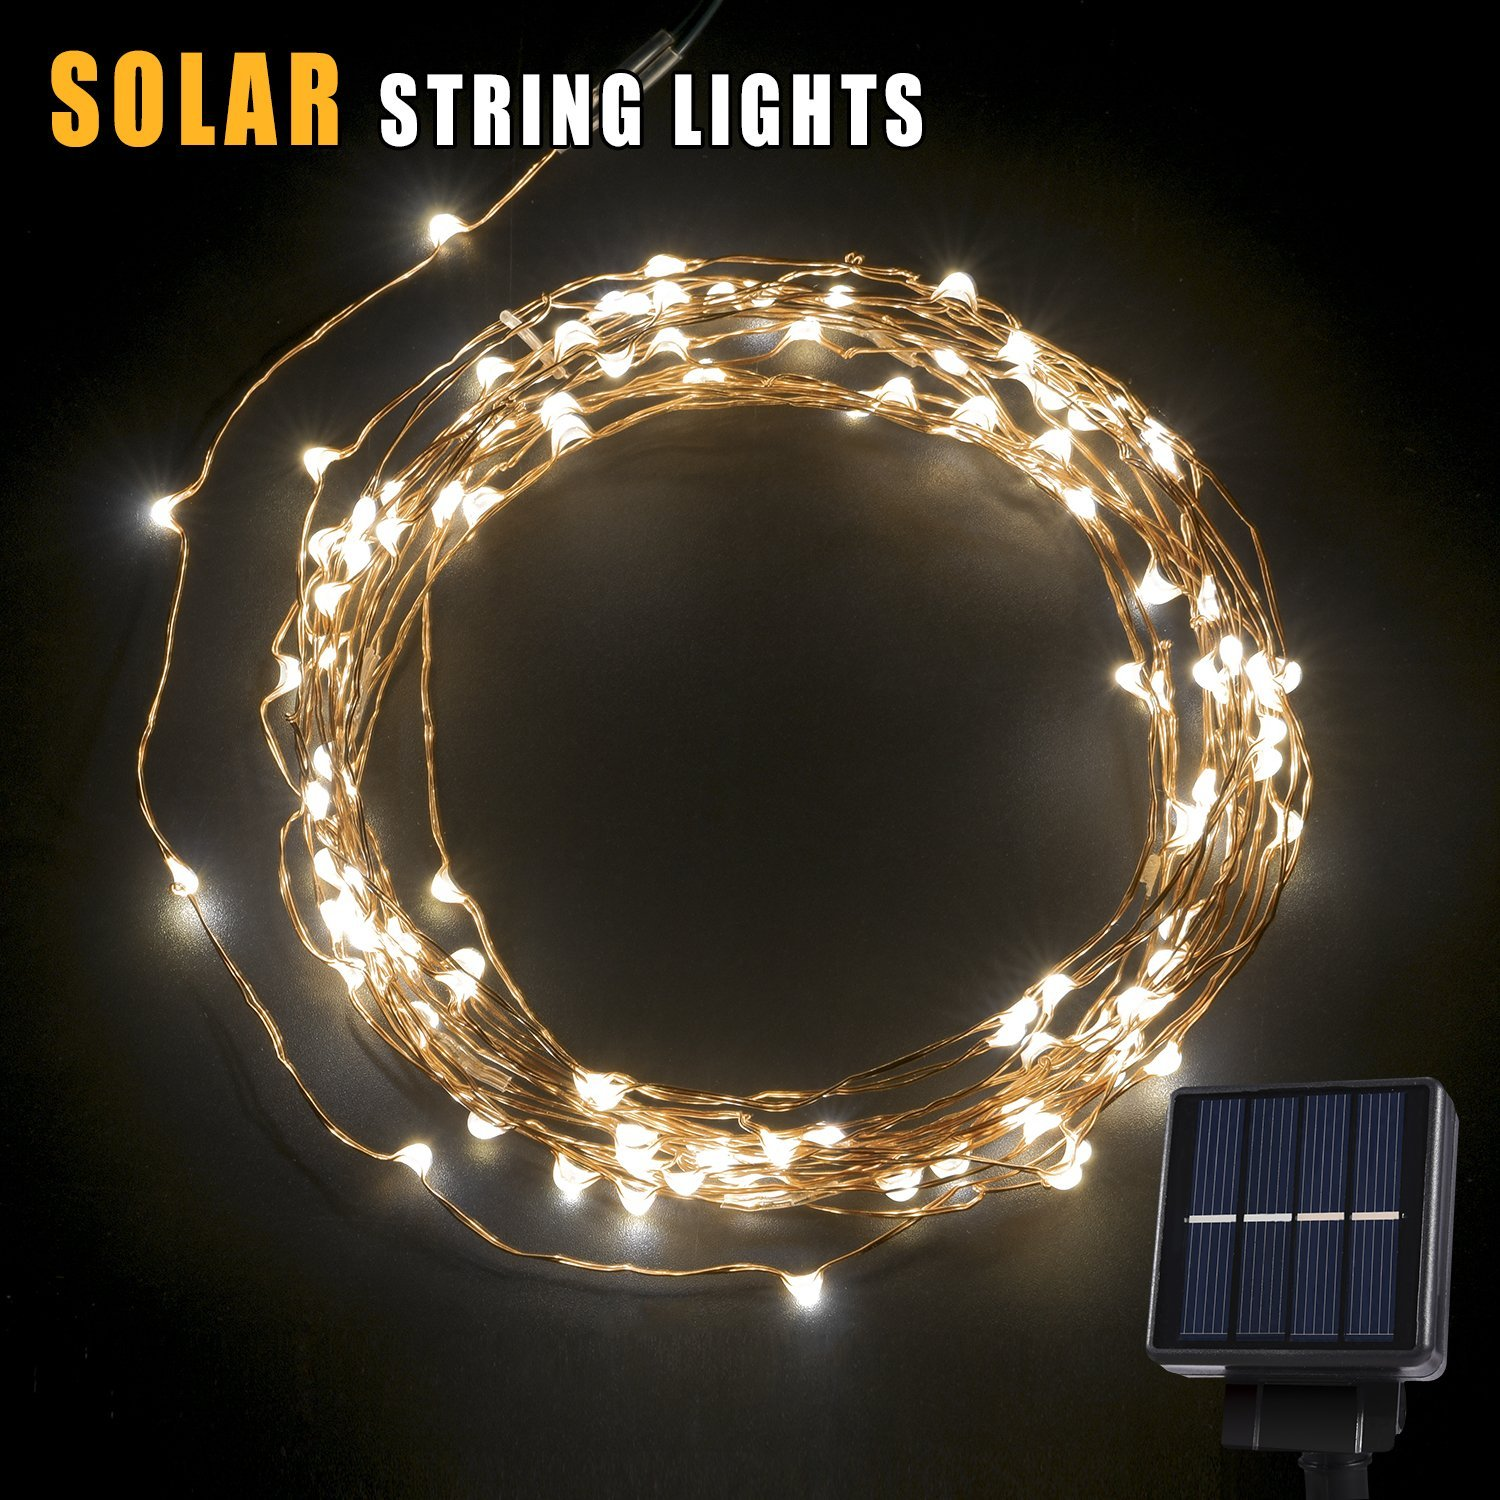 BetterHome 120 LEDs Outdoor Solar Powered LED String Lights 19ft Waterproof Copper Wire Lights for Garden  sc 1 st  Walmart & BetterHome 120 LEDs Outdoor Solar Powered LED String Lights 19ft ...